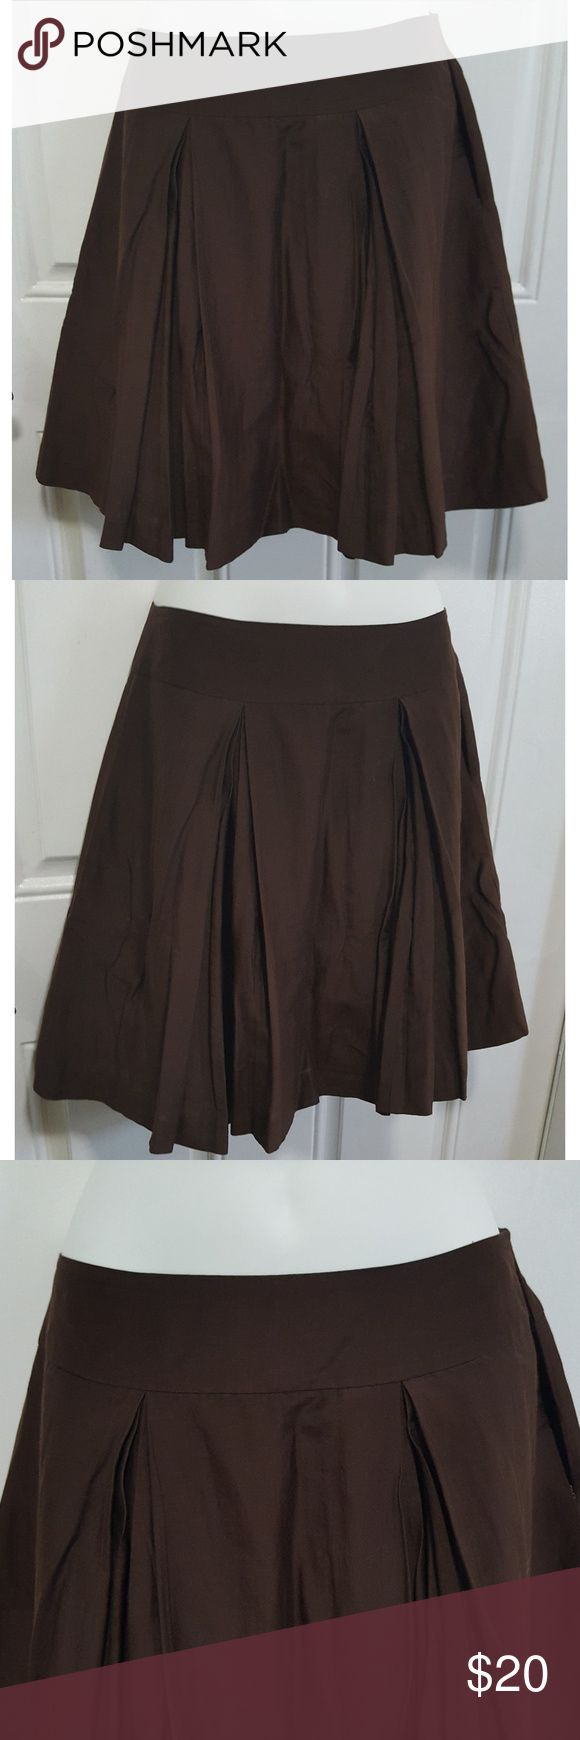 Banana Republic Brown Pleated Silk Cotton Skirt Banana Republic Brown Pleated Silk Cotton Skirt with pockets. Size 6P. No flaws. Smoke free home. Banana Republic Skirts